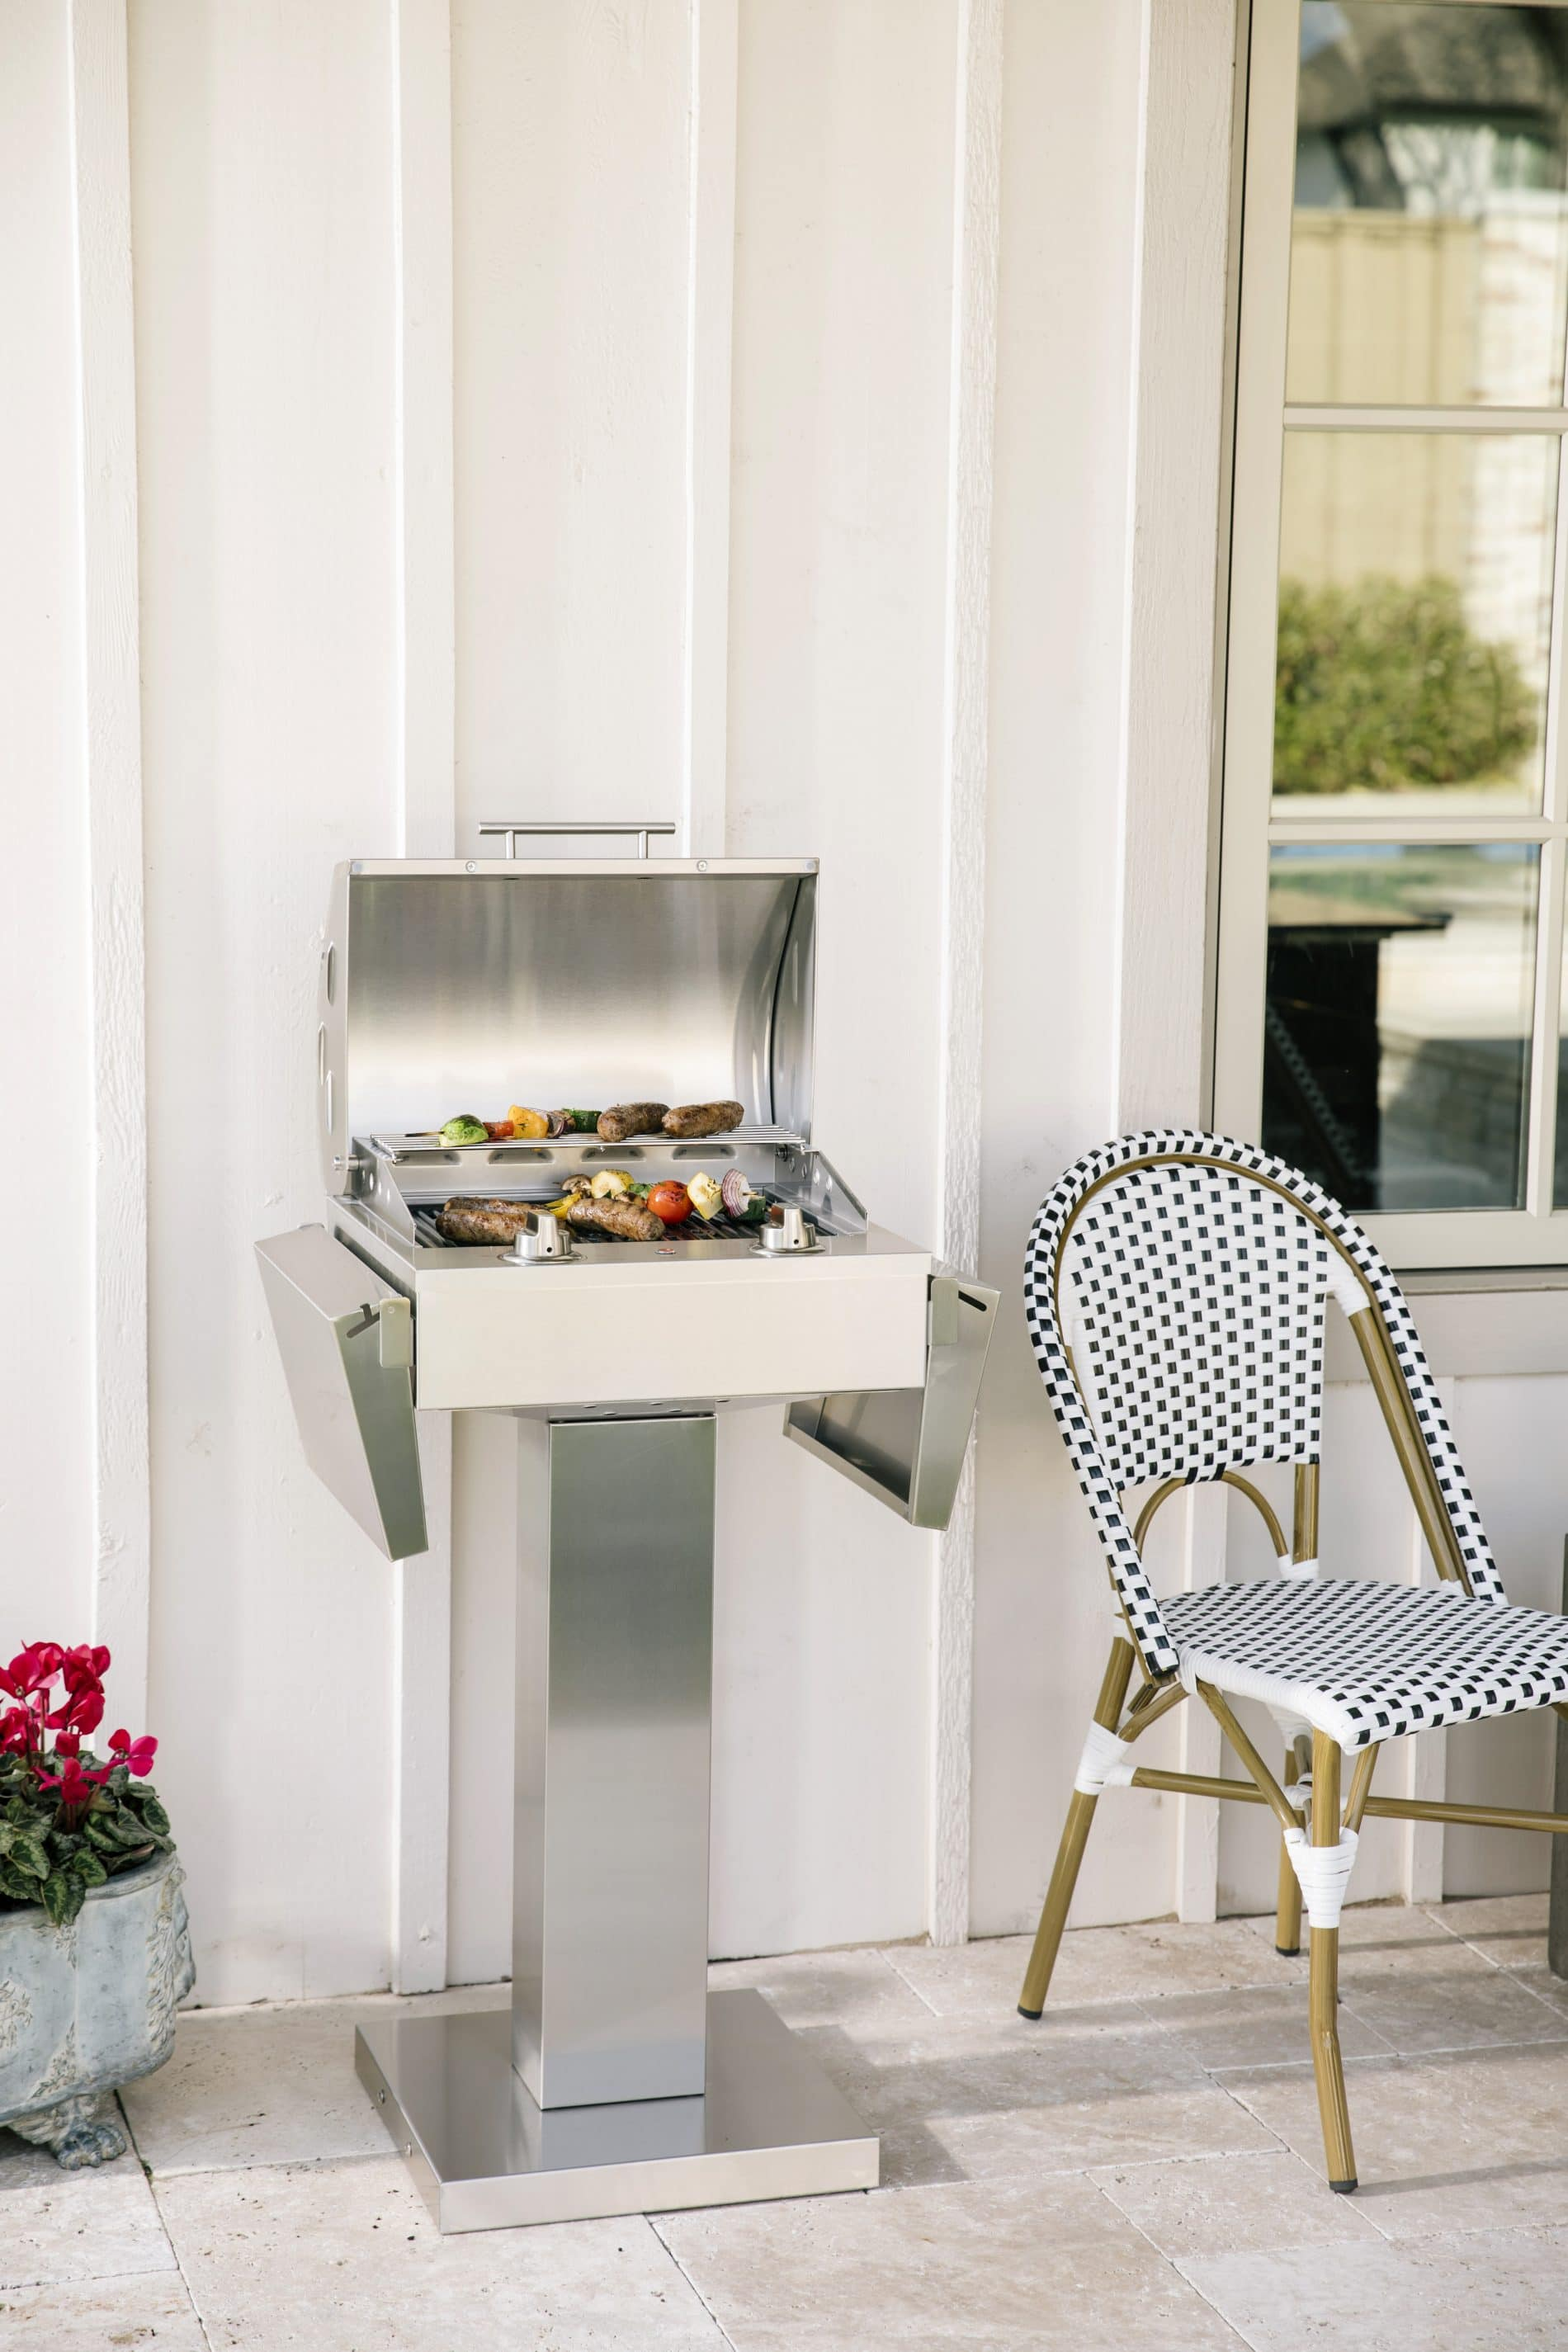 Gallery - Electric and Portable Grills - Coyote Outdoor Living on Coyote Outdoor Living Inc id=51346